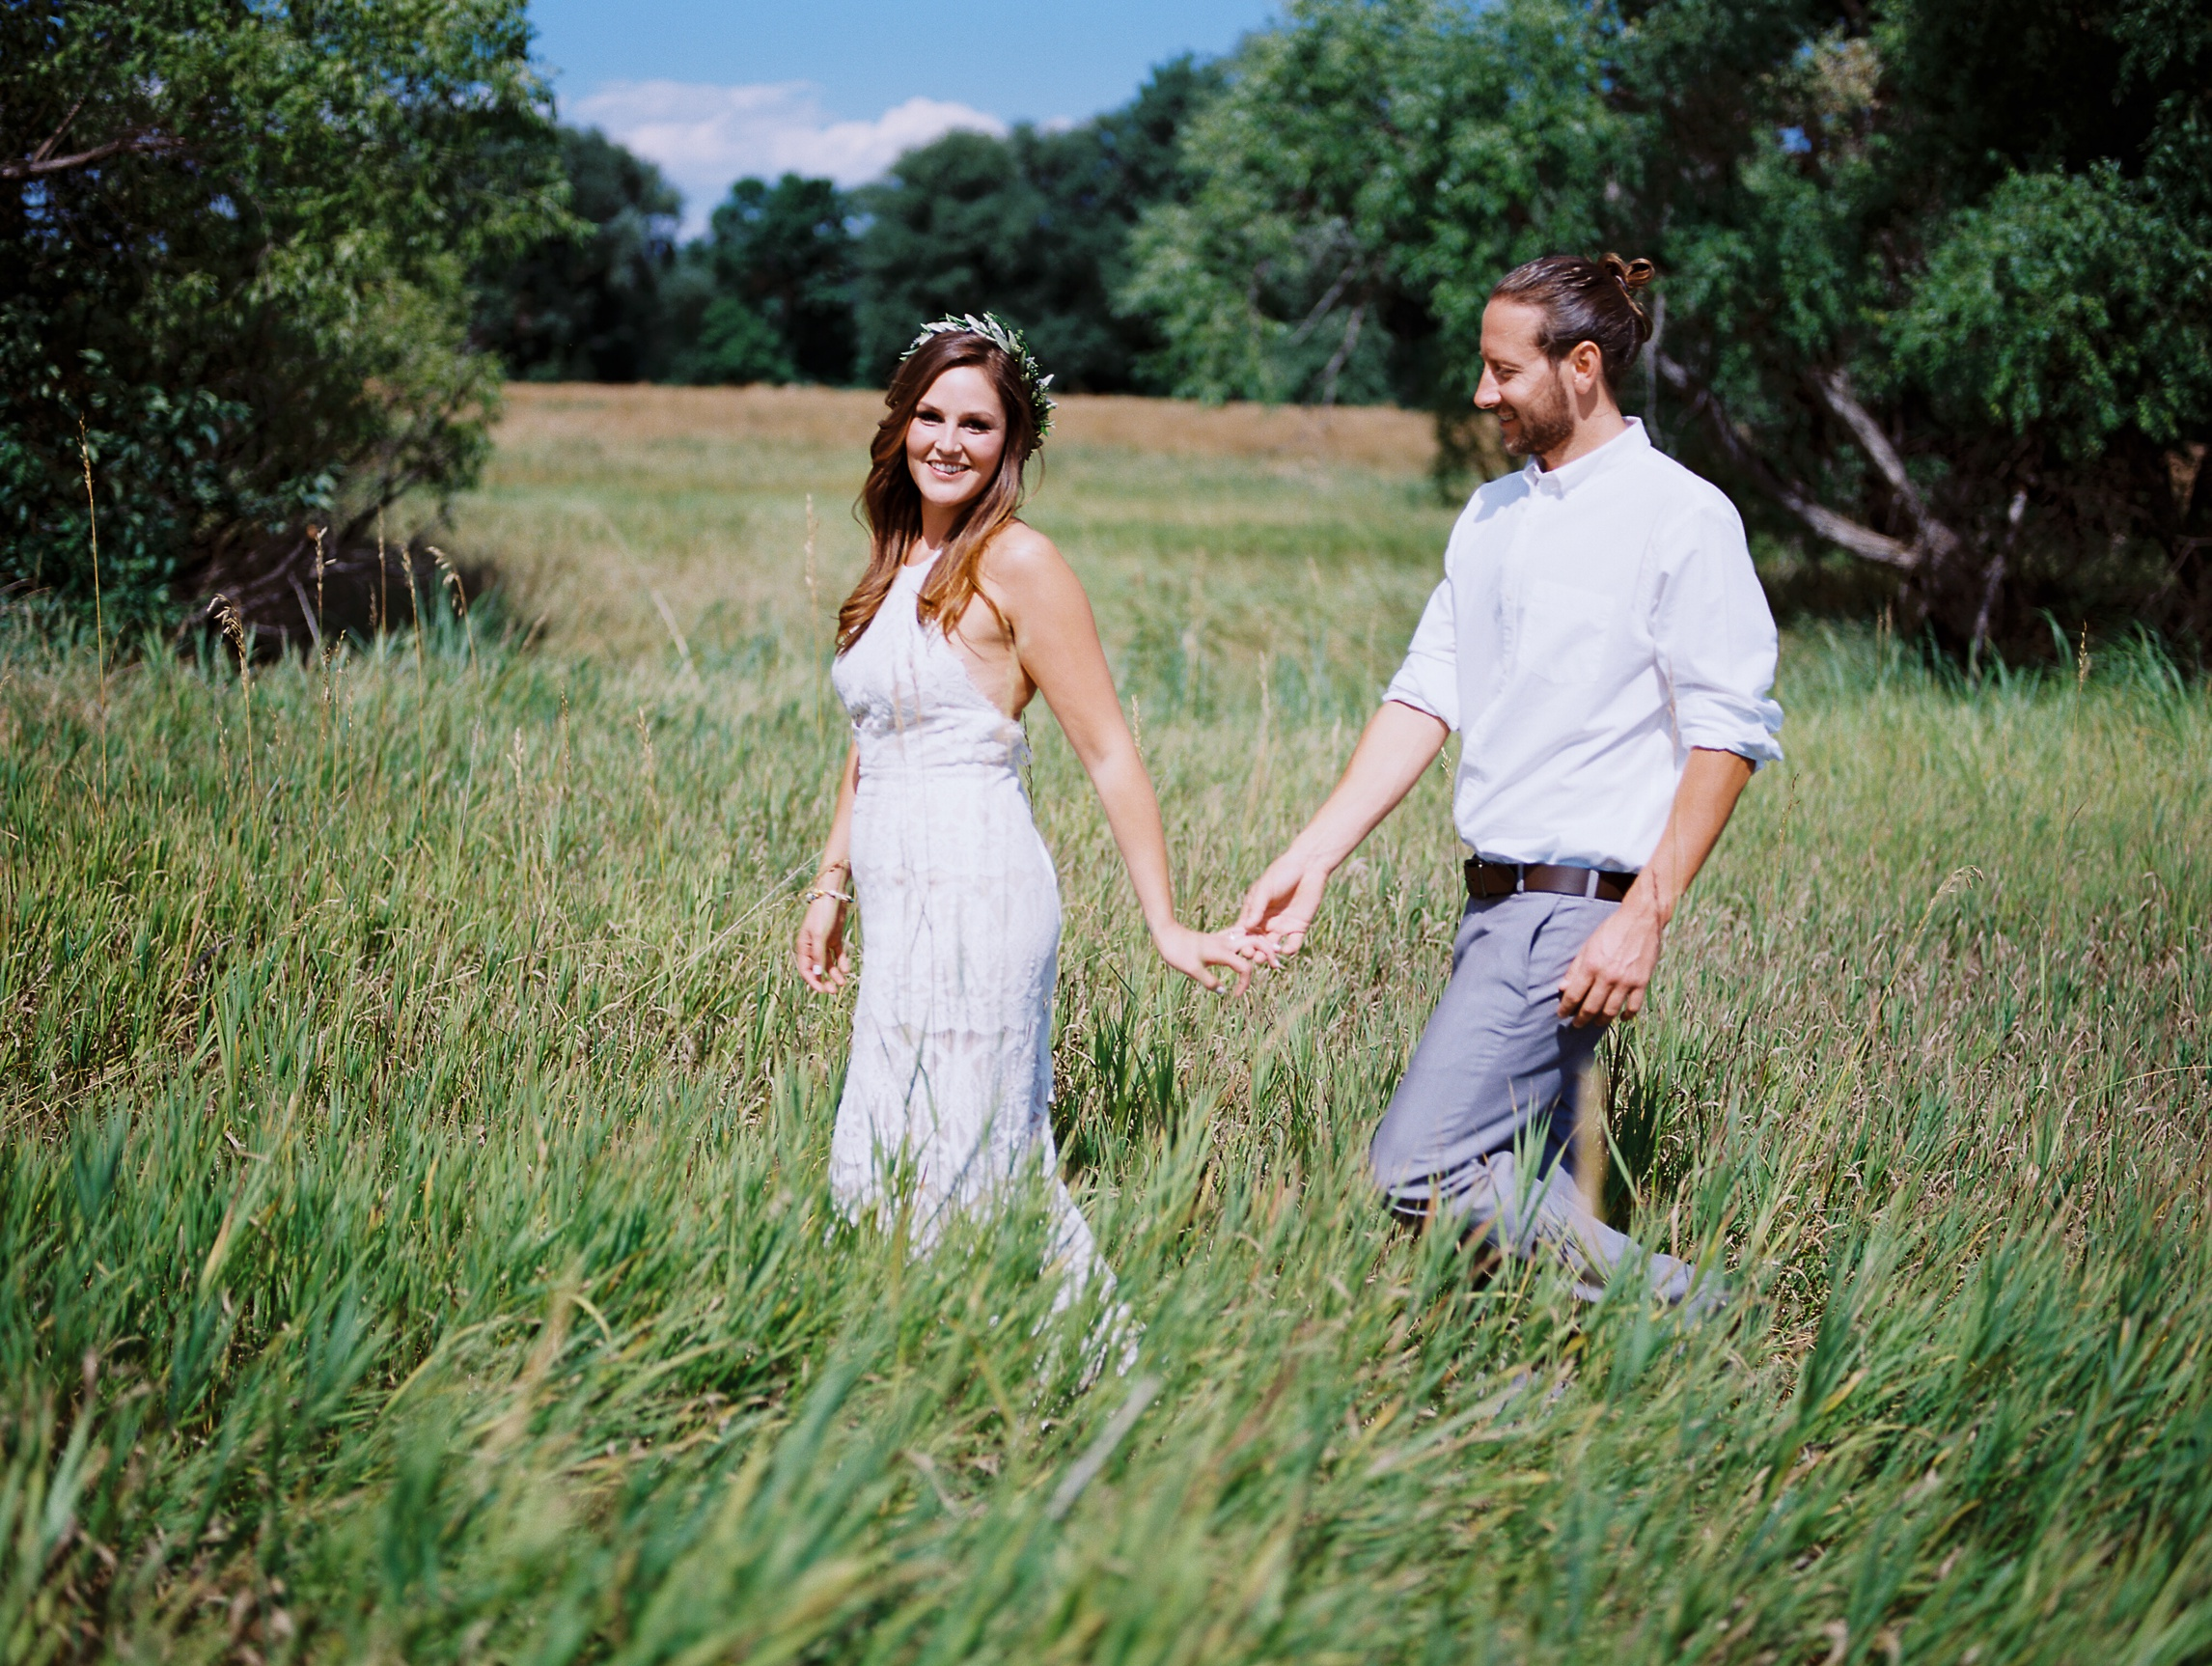 A bride and groom at their outdoor Colorado wedding in Old Town Fort Collins. Wedding photography by Sonja Salzburg of Sonja K Photography.